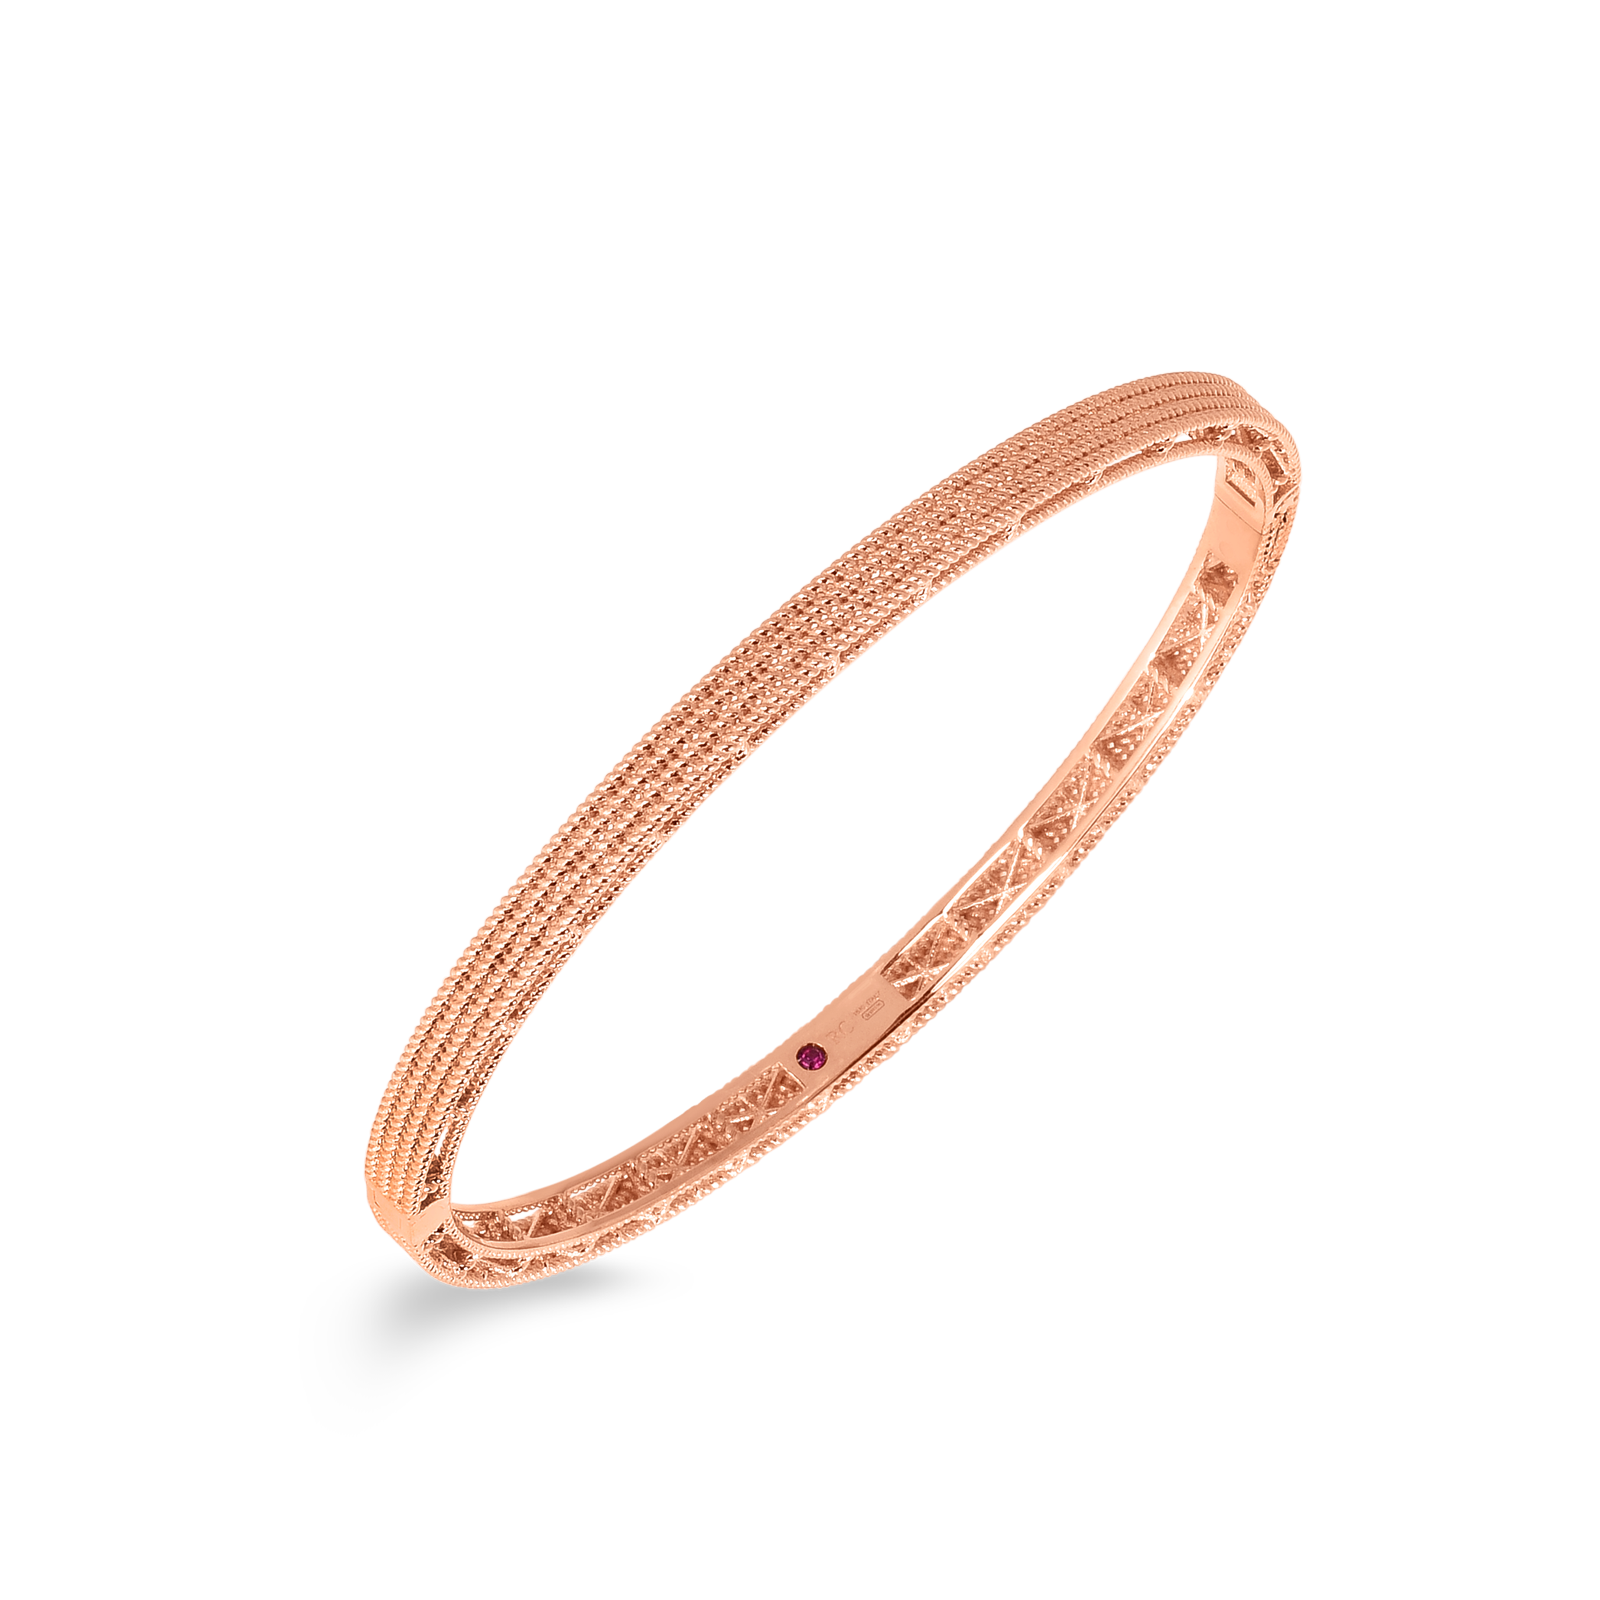 Roberto Coin 18K Rose Gold Barocco Oval Bangle